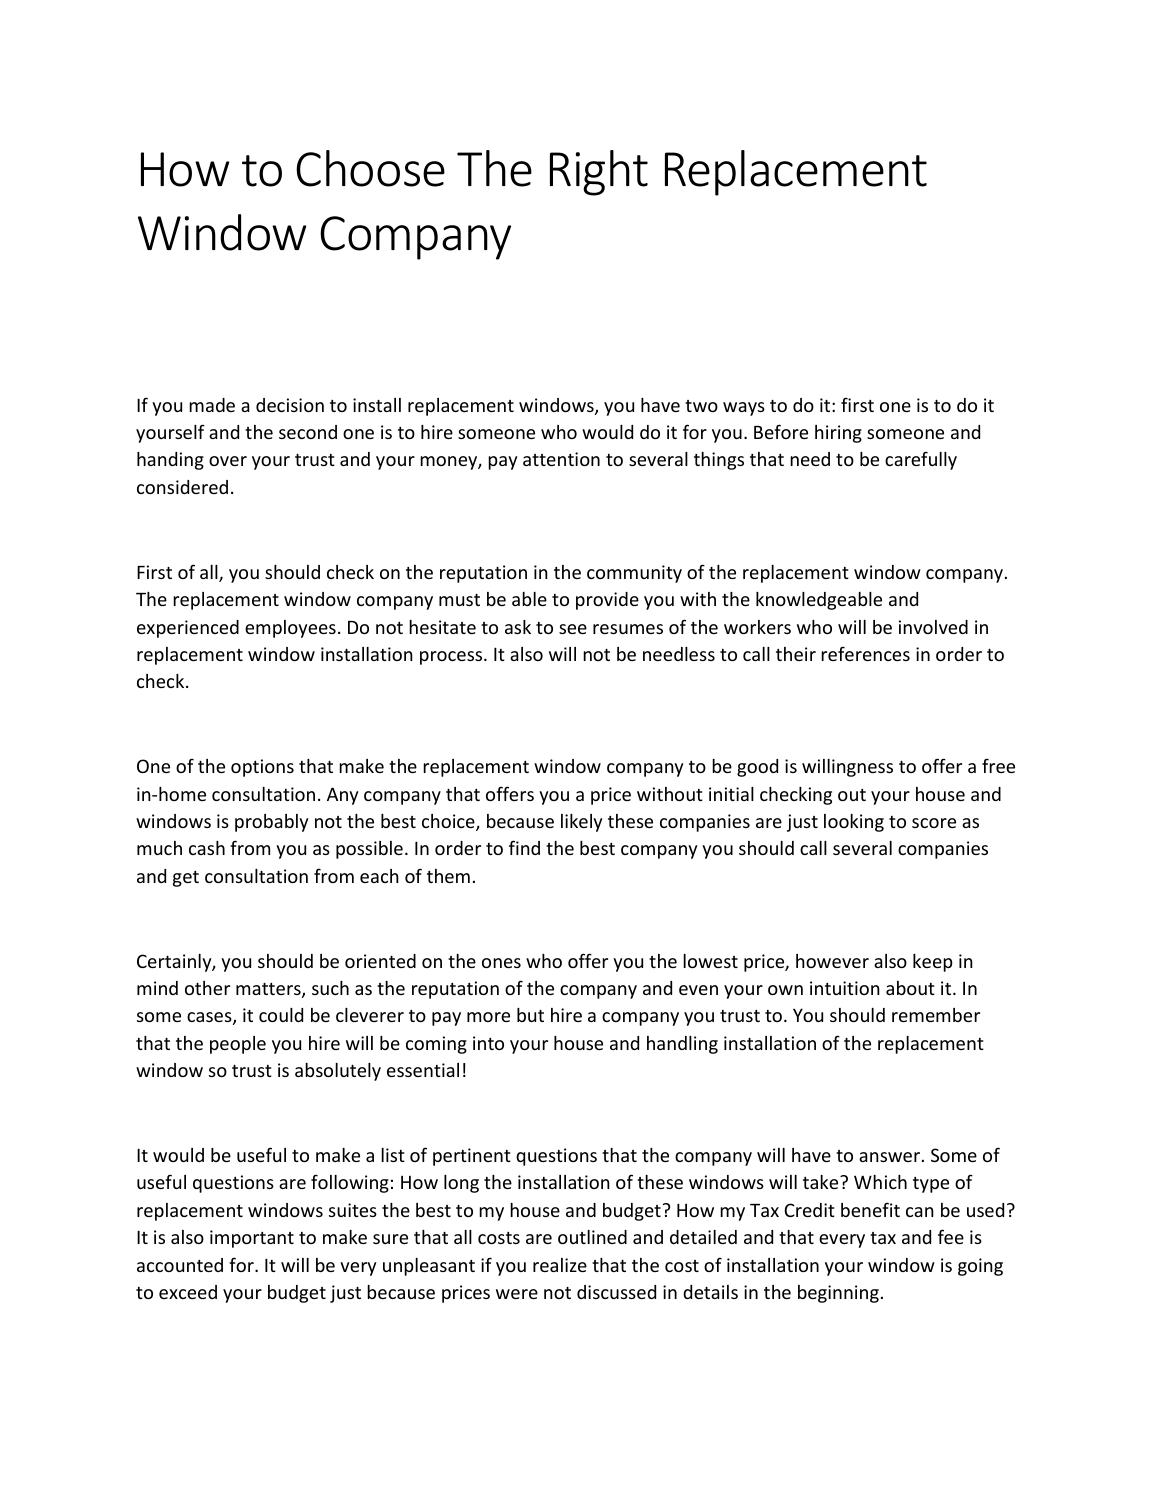 How To Choose The Right Replacement Window Company By Nadia Javaid